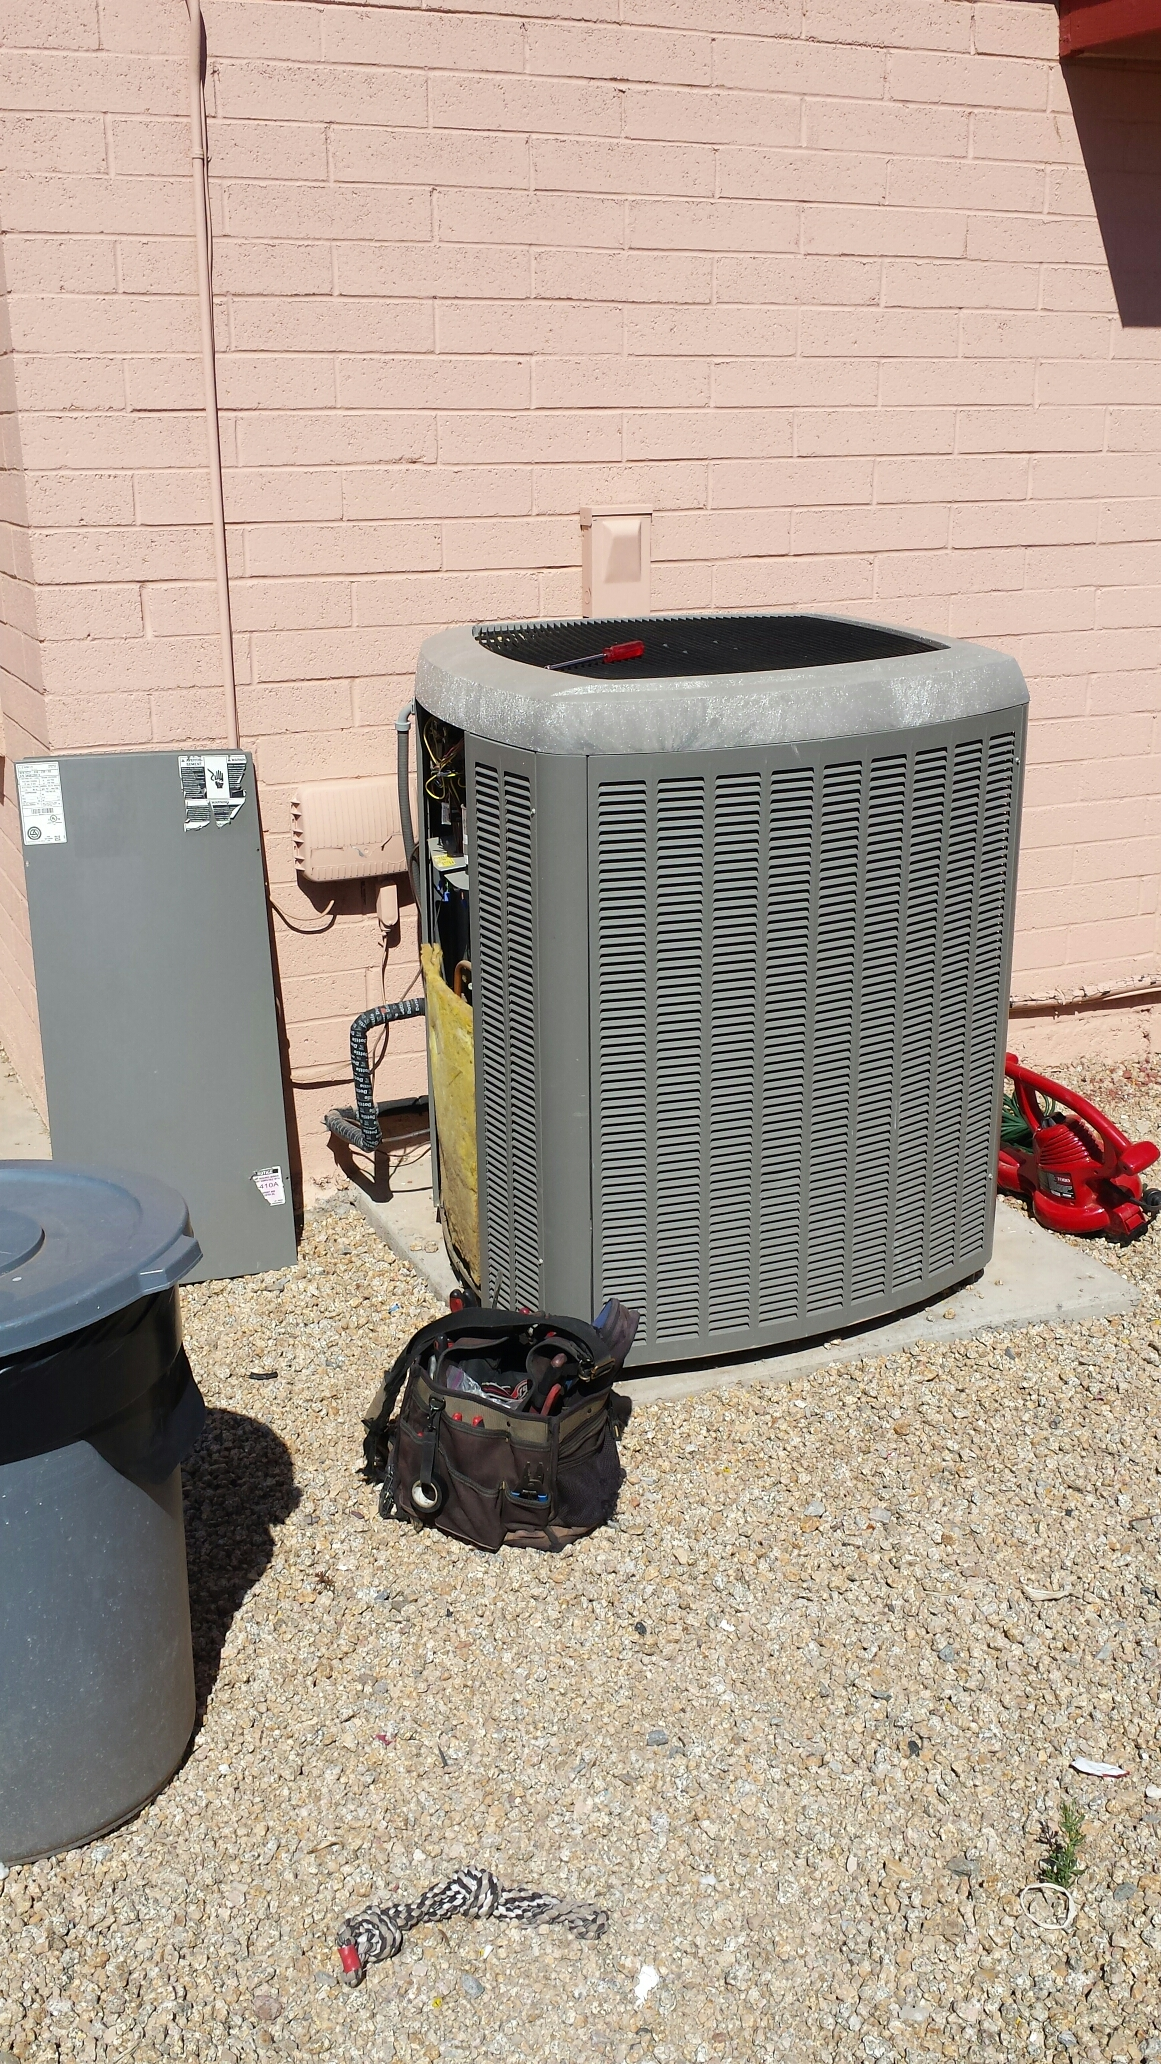 Phoenix, AZ - Spring Maintenance on this Lennox Air Conditioner. You'll Lika...Hobaica!